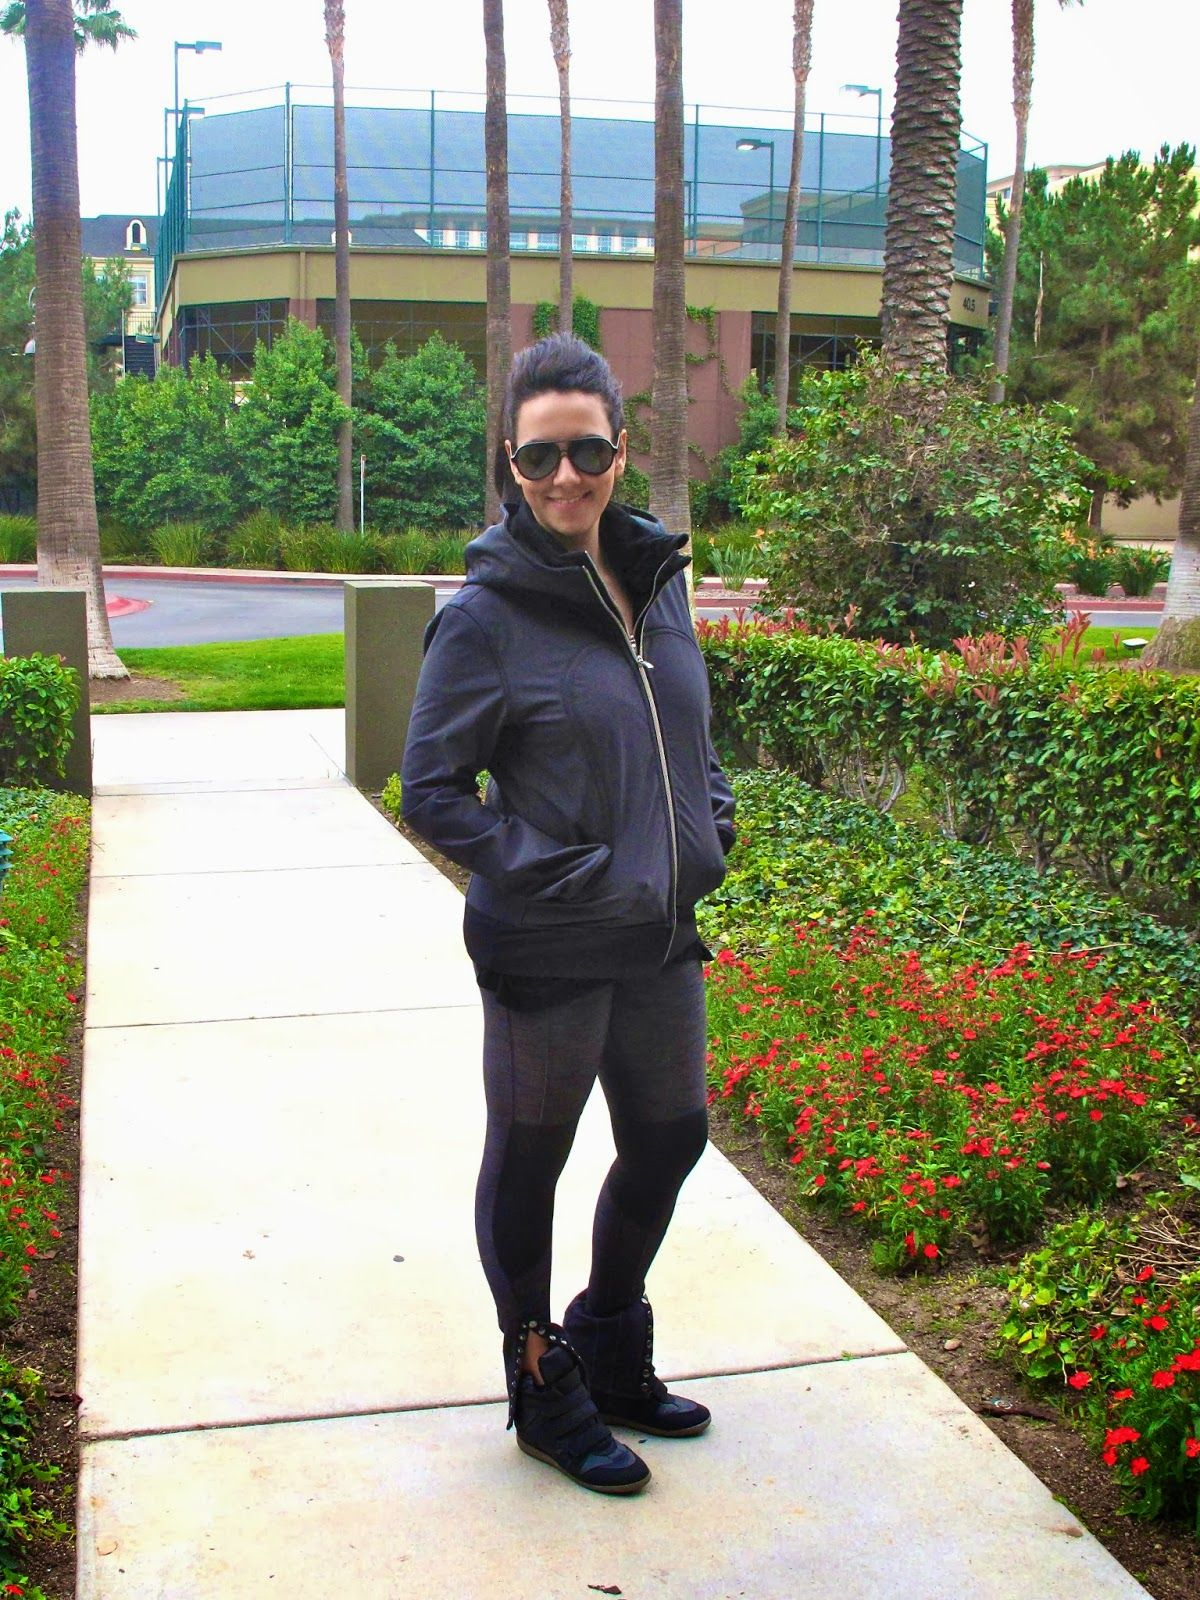 Workout outfit. Lululemon pants and jacket, Target Sneaker Wedges, H&M shirt and Giant Vintage Sunglasses.